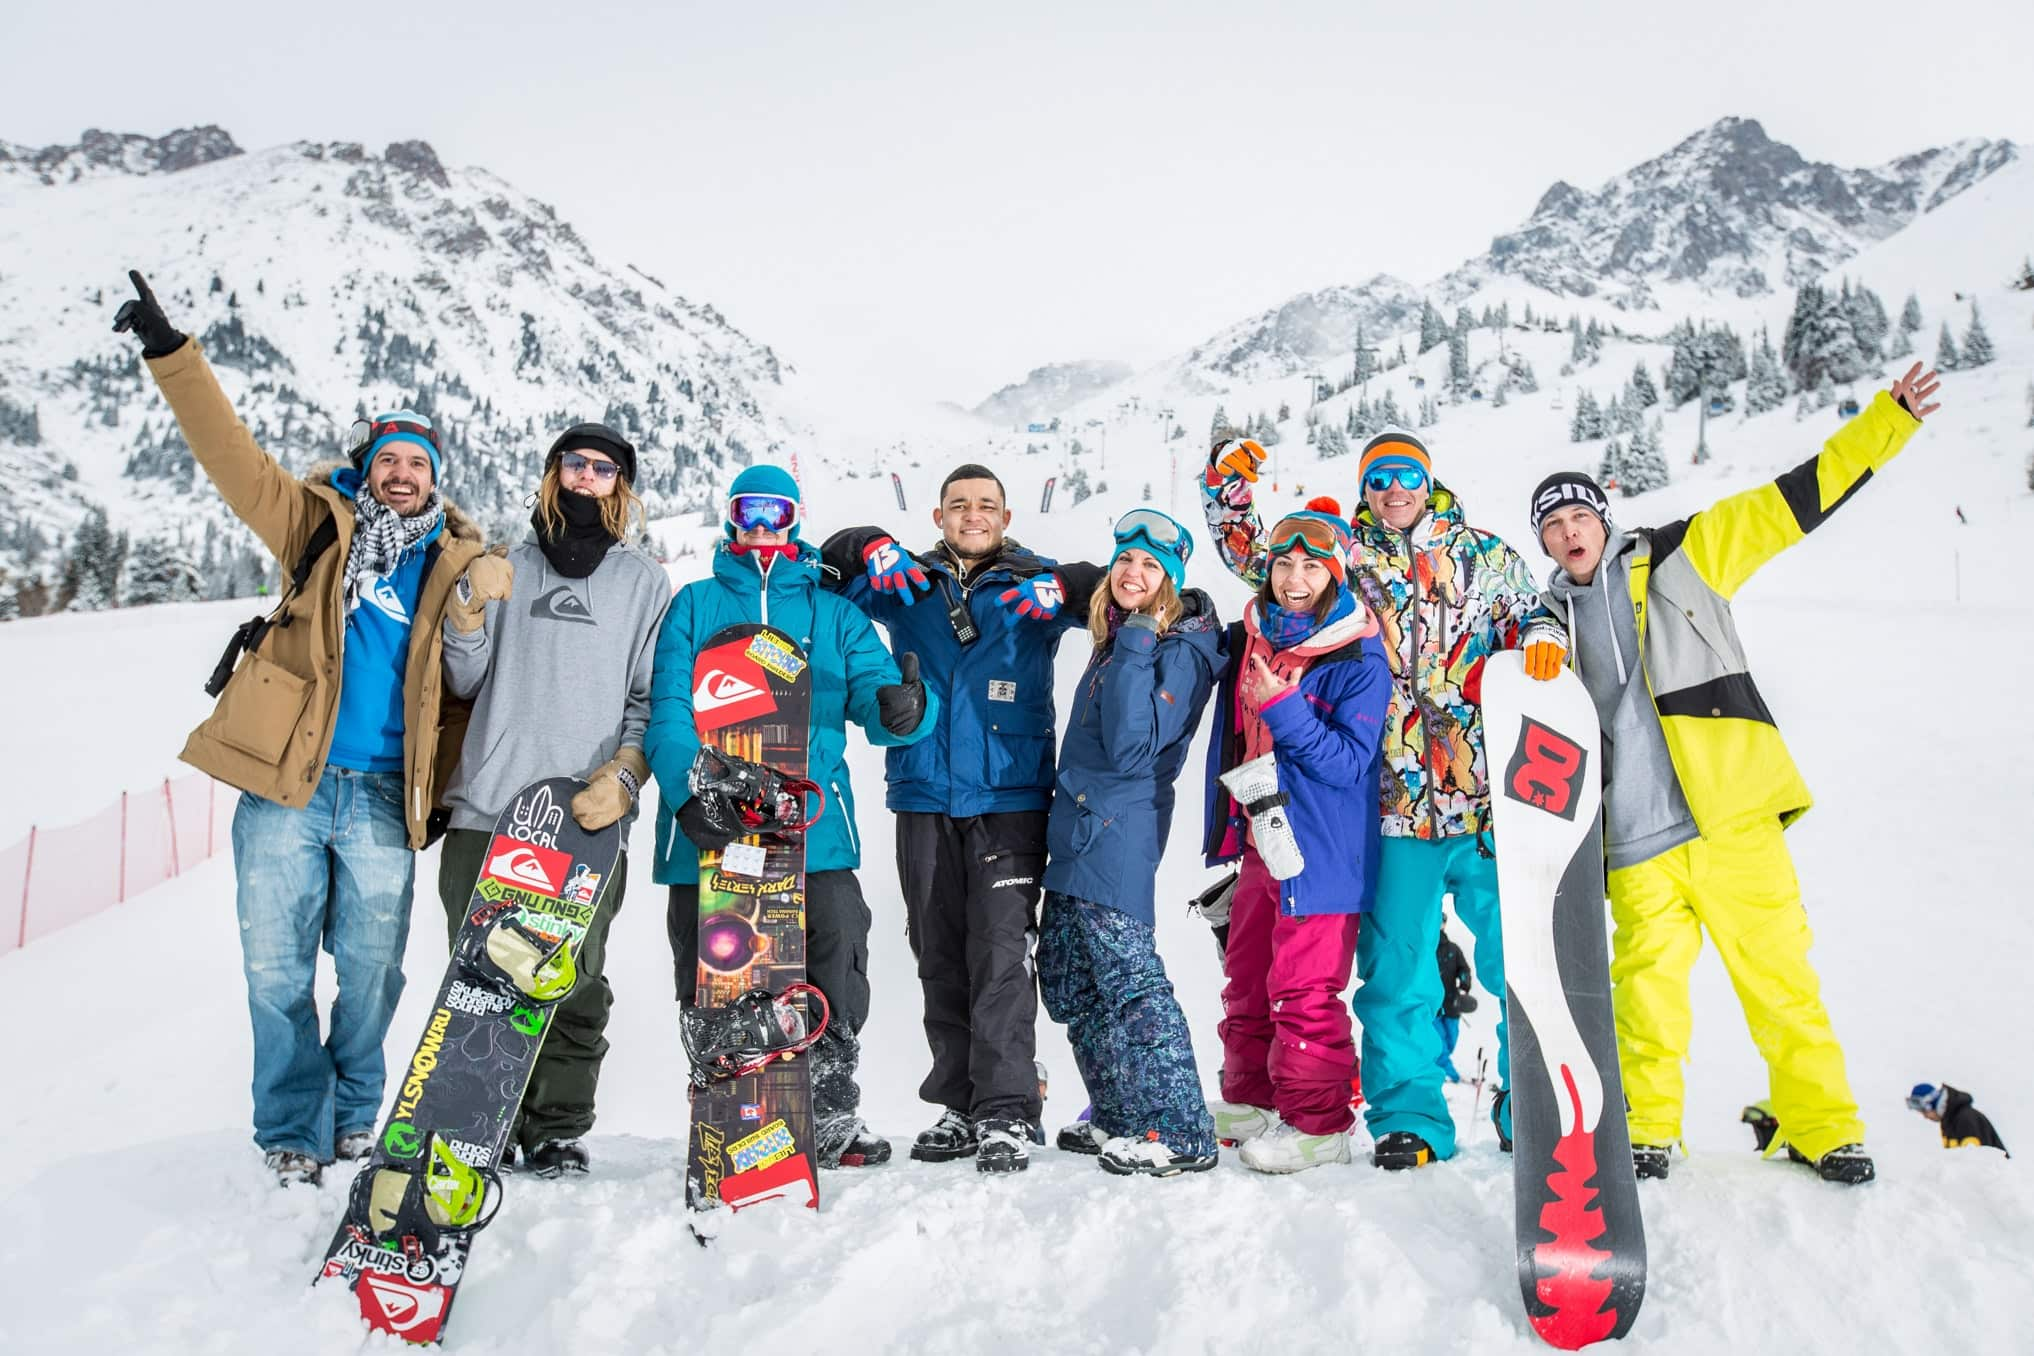 Group of skiers with mountains behind them